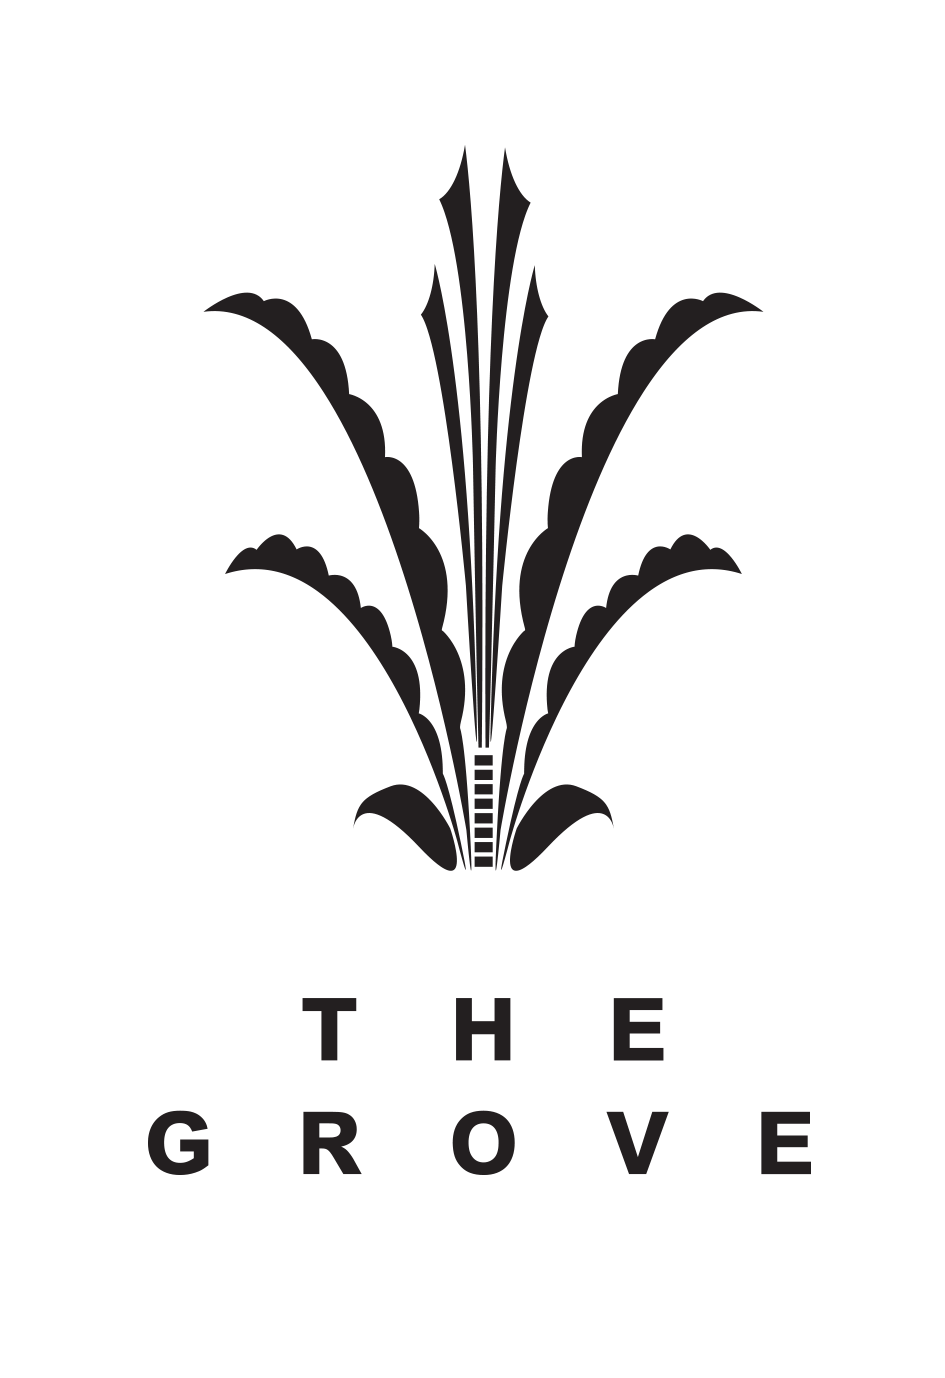 Grove+logo.png